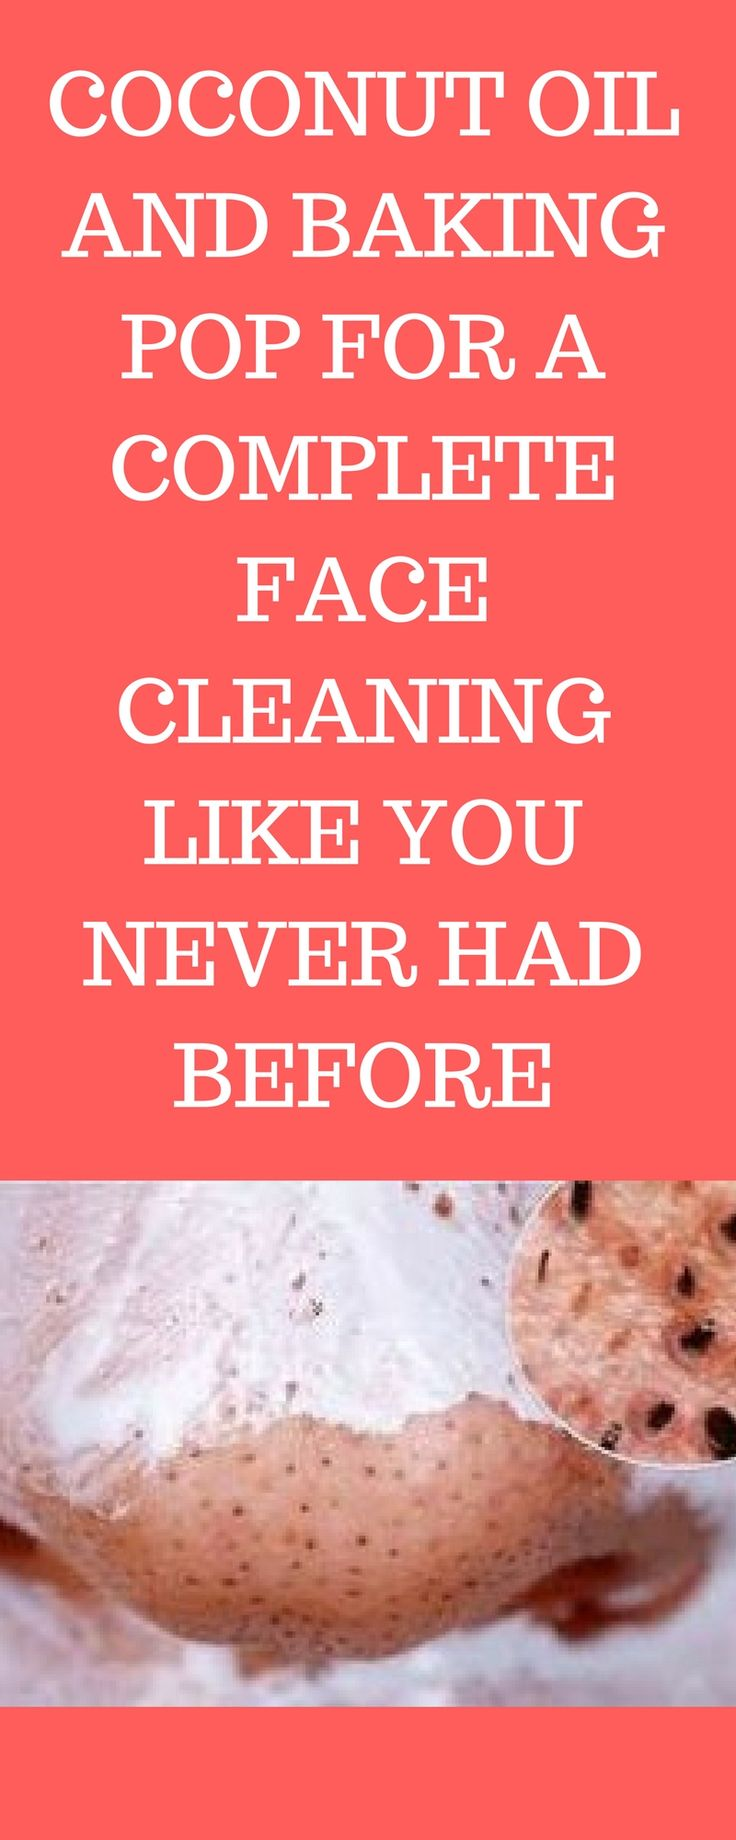 COCONUT OIL AND BAKING POP FOR A COMPLETE FACE CLEANING LIKE YOU NEVER HAD BEFORE